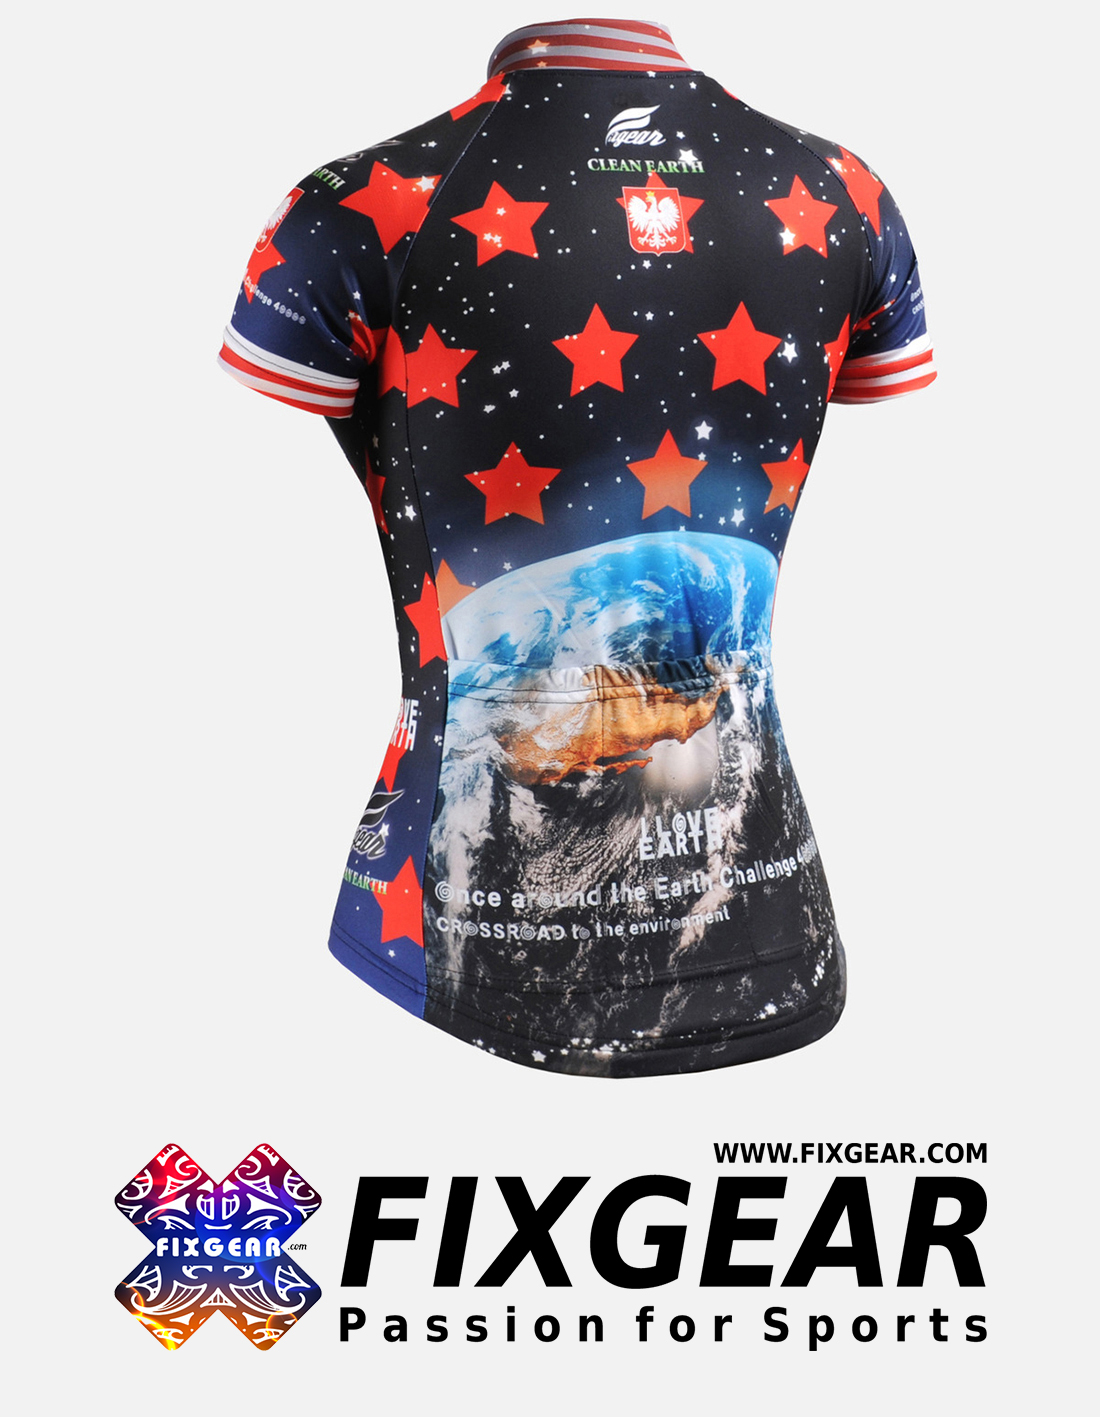 FIXGEAR CS-W1002 Women's Short Sleeve Jersey